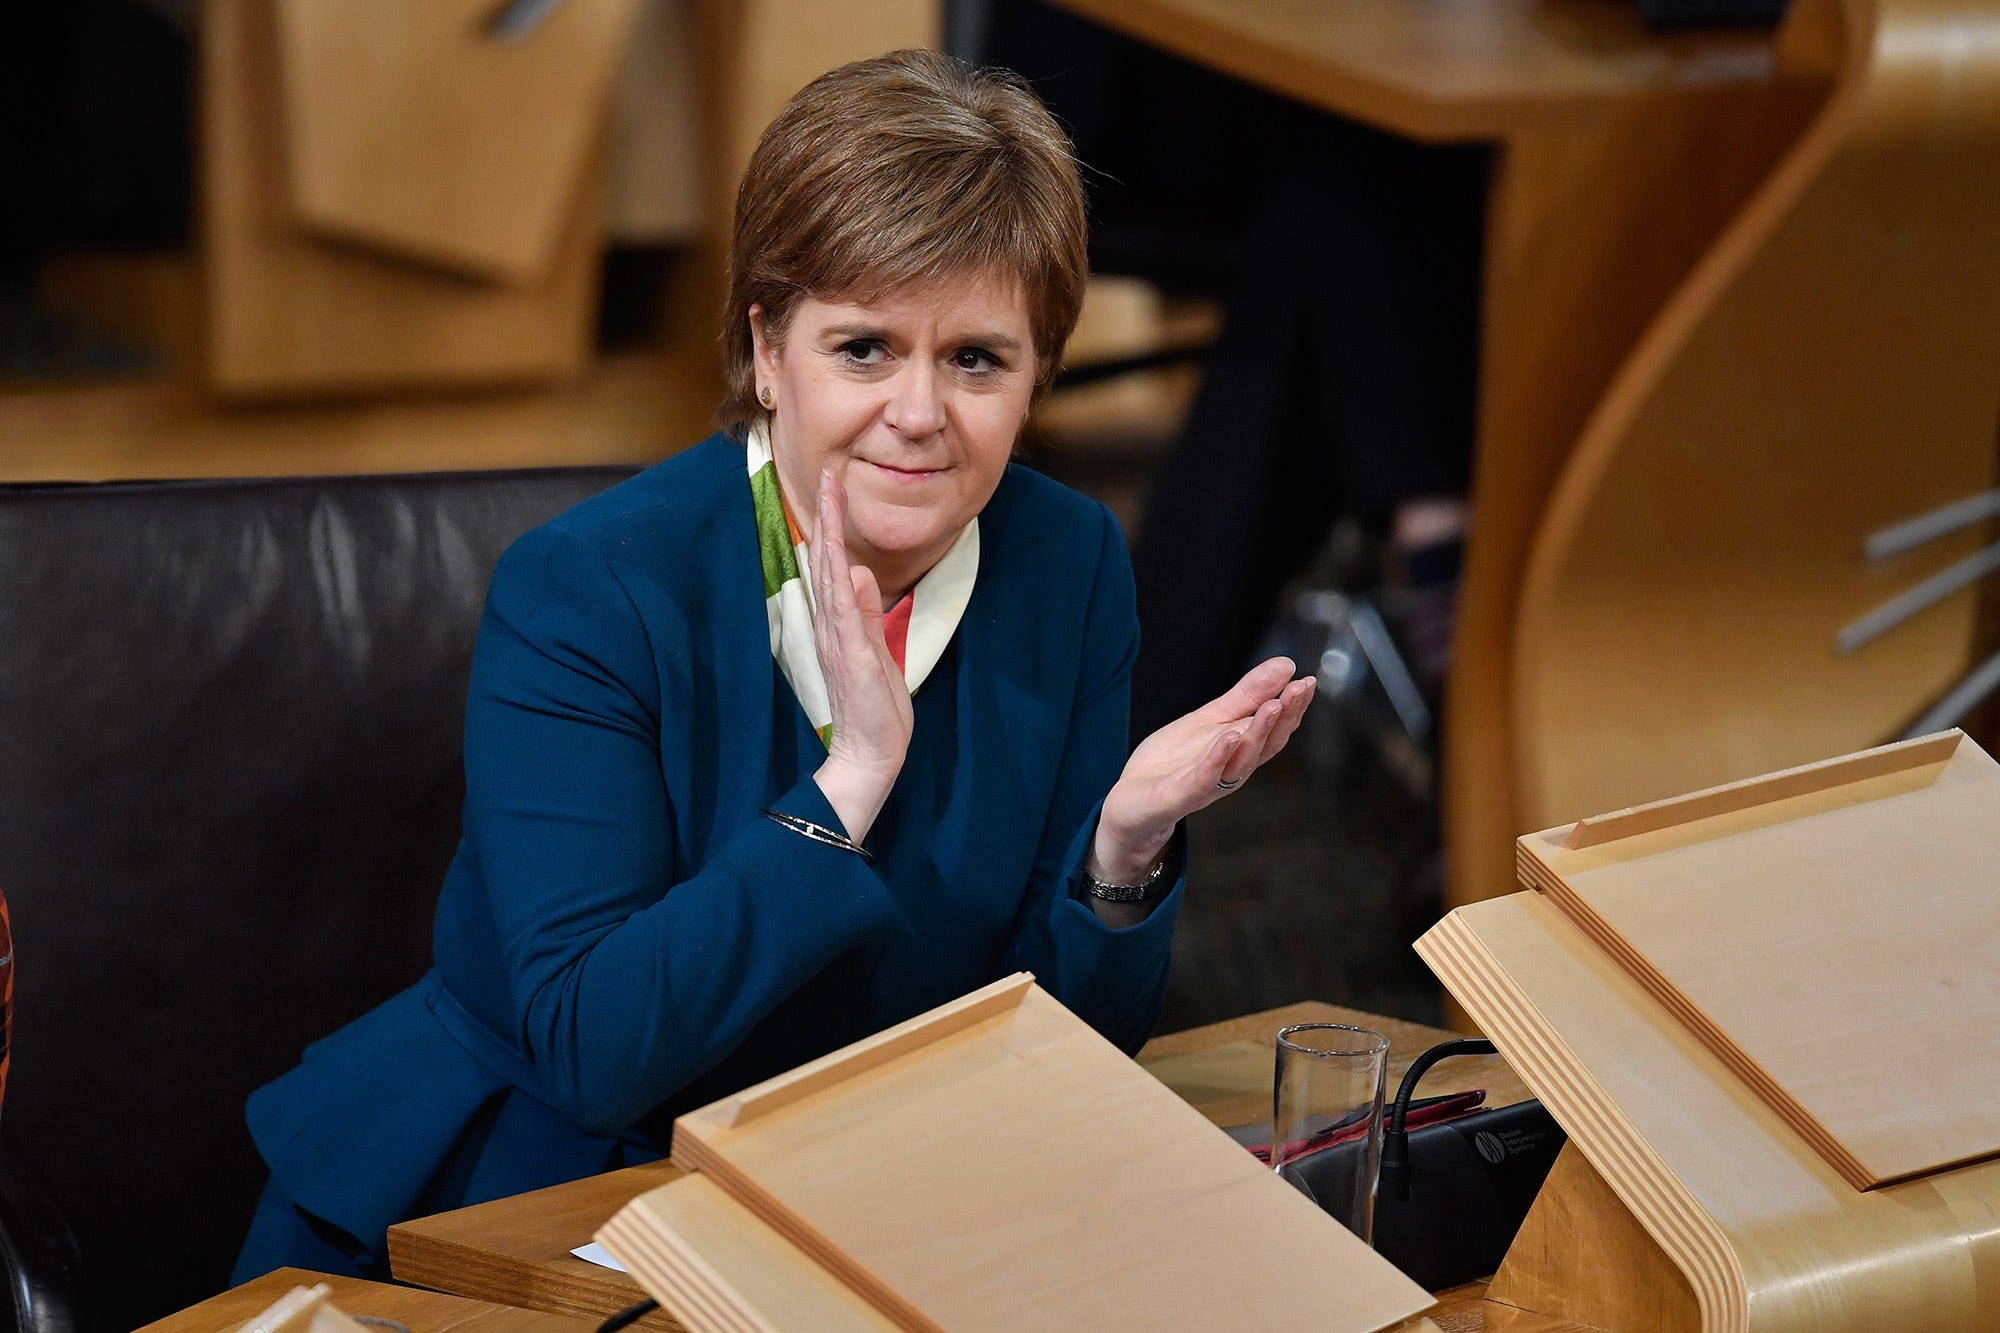 Scottish leader: Government will get vote on bill to trigger Brexit